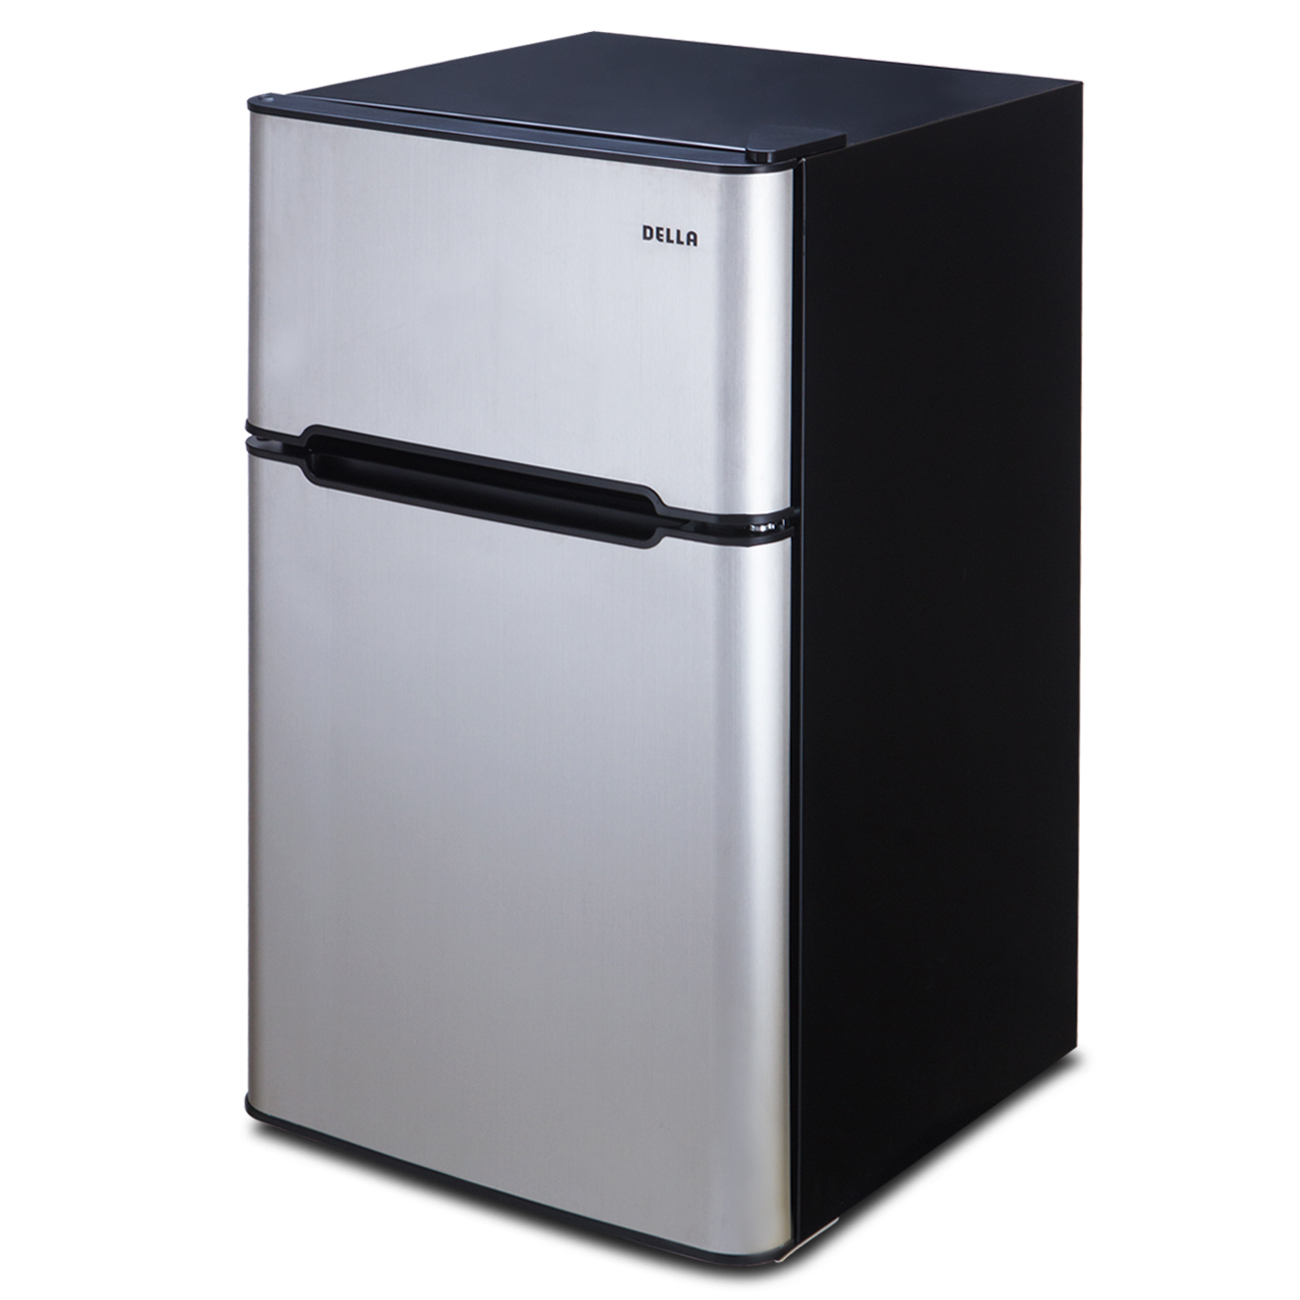 New Compact 3.2 Cu Ft Fridge Mini Dorm Office Refrigerator